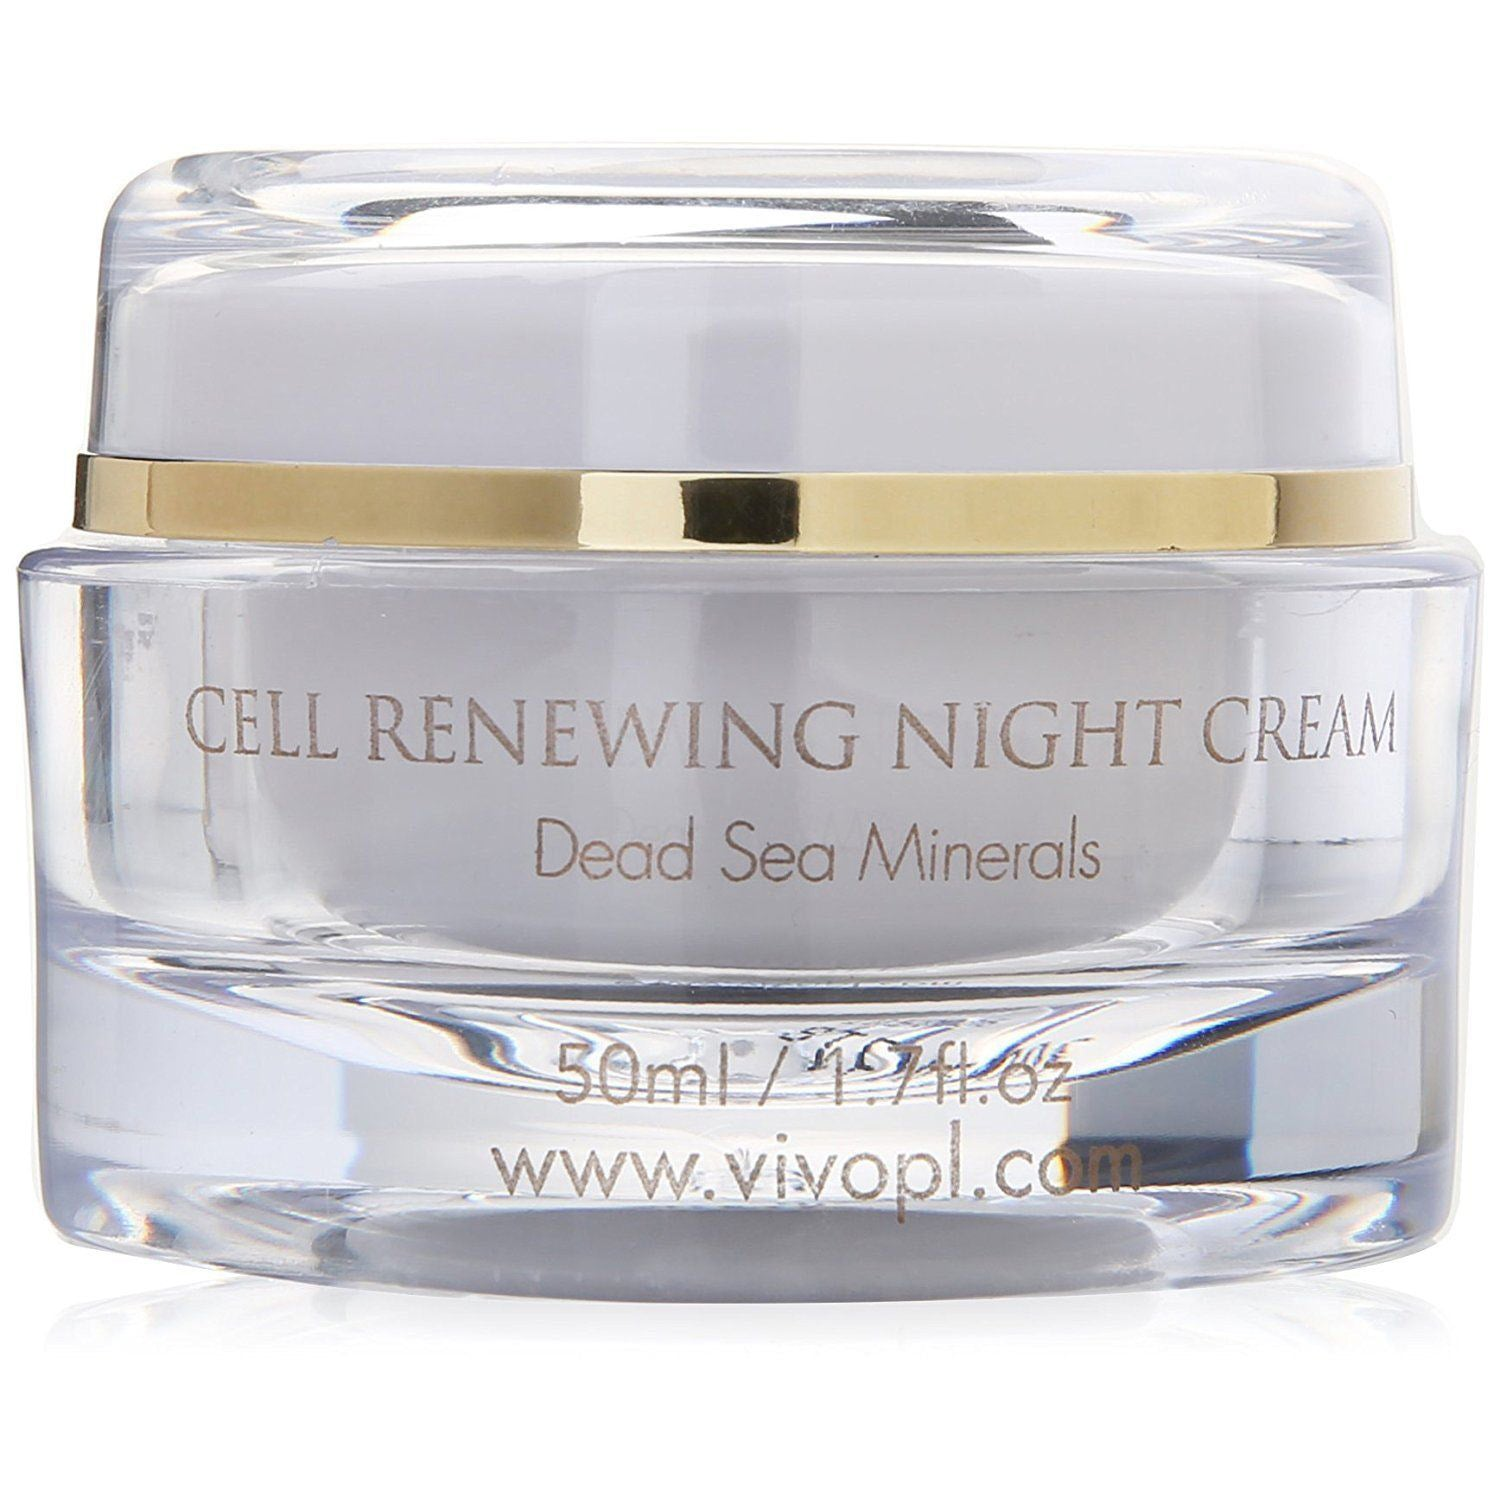 Vivo Per Lei Night Renewal Cream